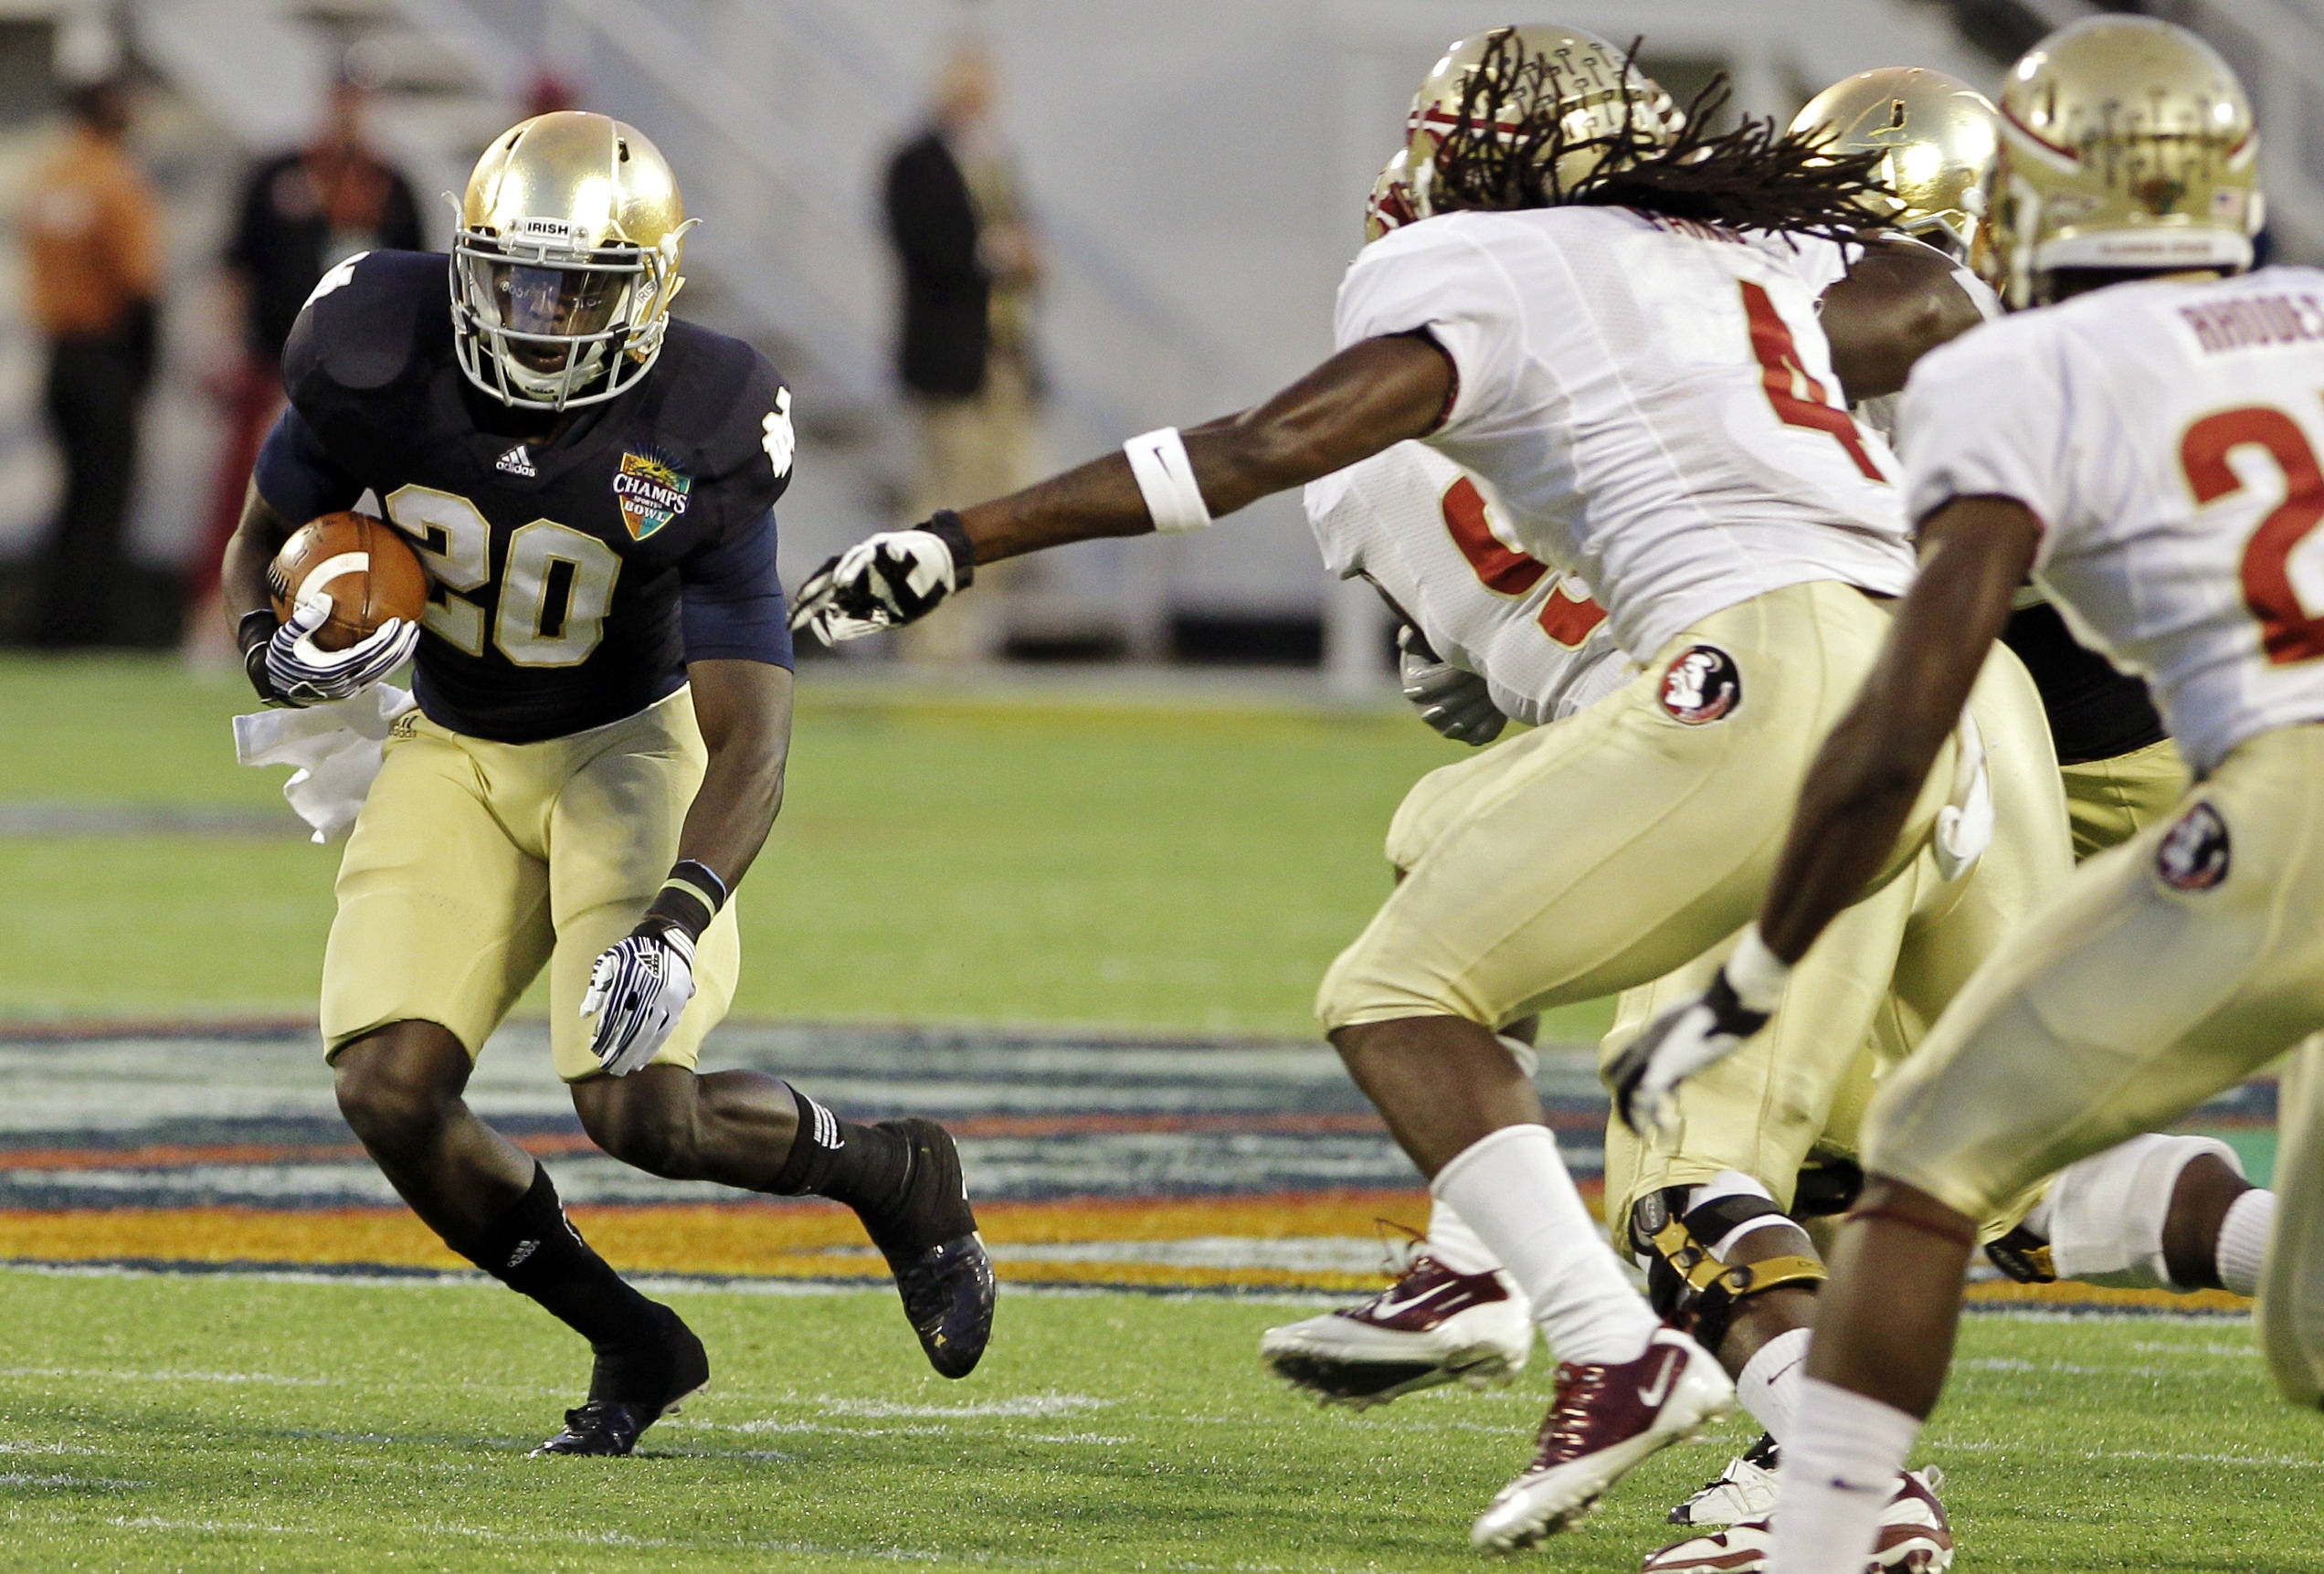 Florida State defenders Terrance Parks (4) and Xavier Rhodes, right, pursue Notre Dame running back Cierre Wood. (AP Photo/John Raoux)